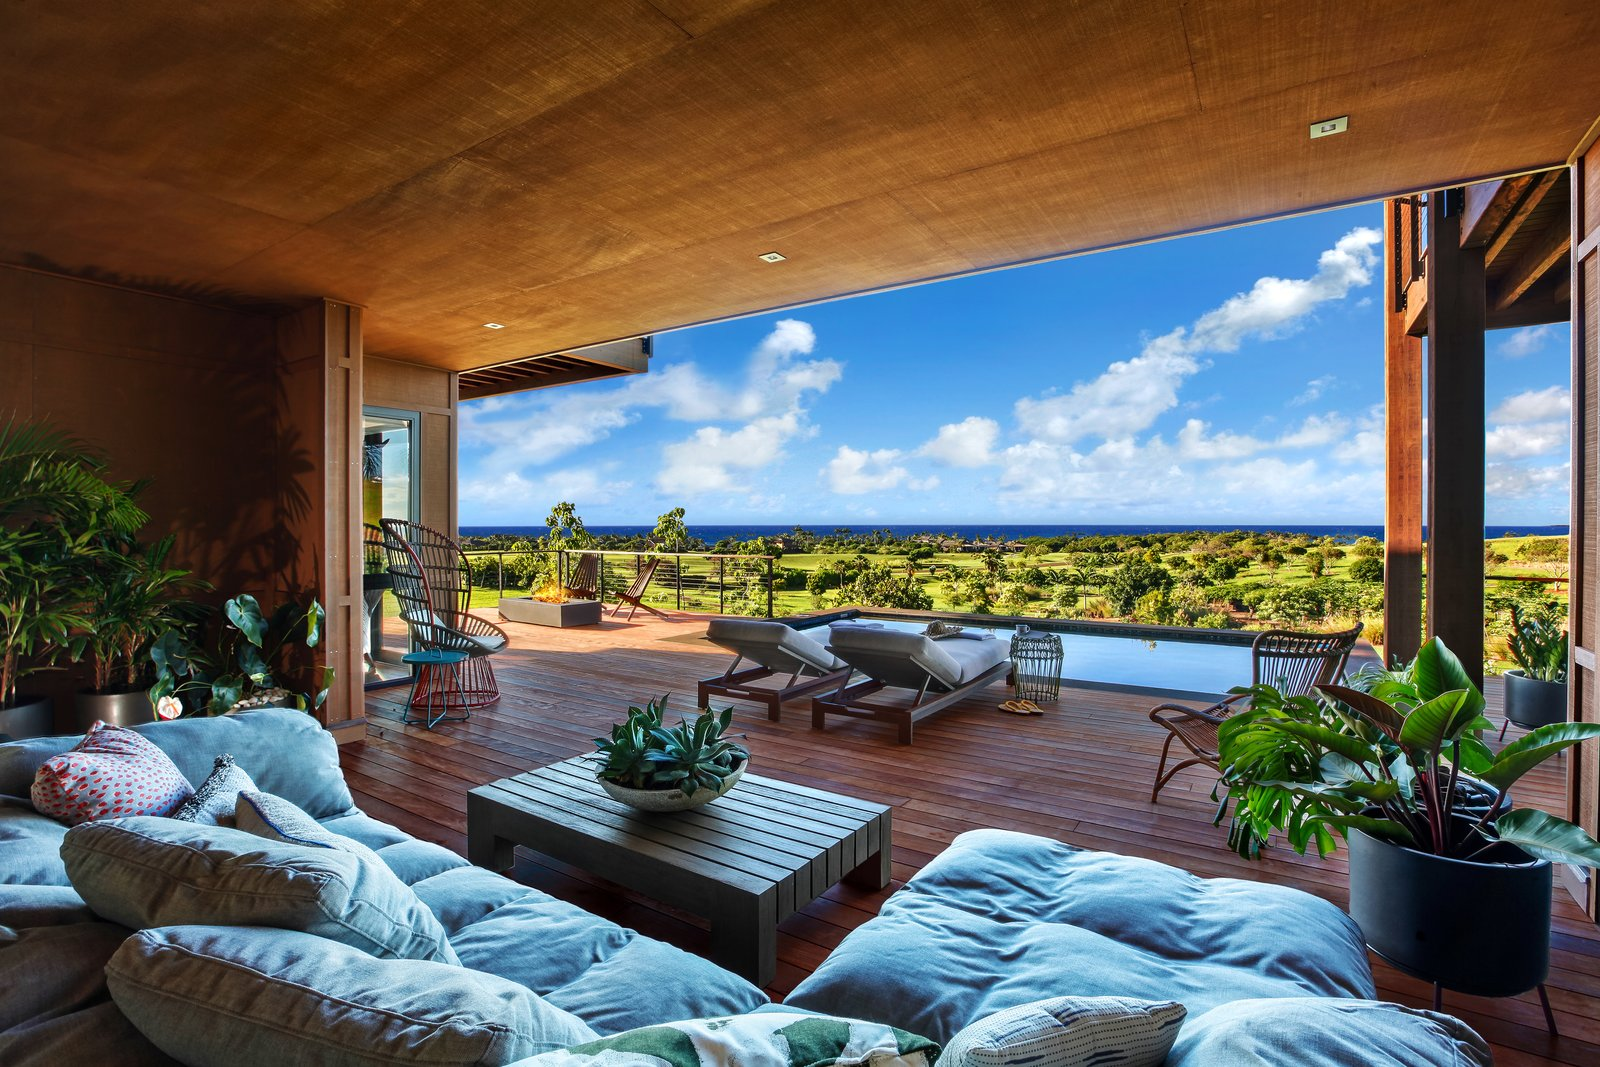 Outdoor, Small Pools, Tubs, Shower, Back Yard, Raised Planters, Infinity Pools, Tubs, Shower, and Large Patio, Porch, Deck The lanai and the private pool.  HOMES from A Breezy Hawaiian Residence by Olson Kundig Hits the Market at $6.95M